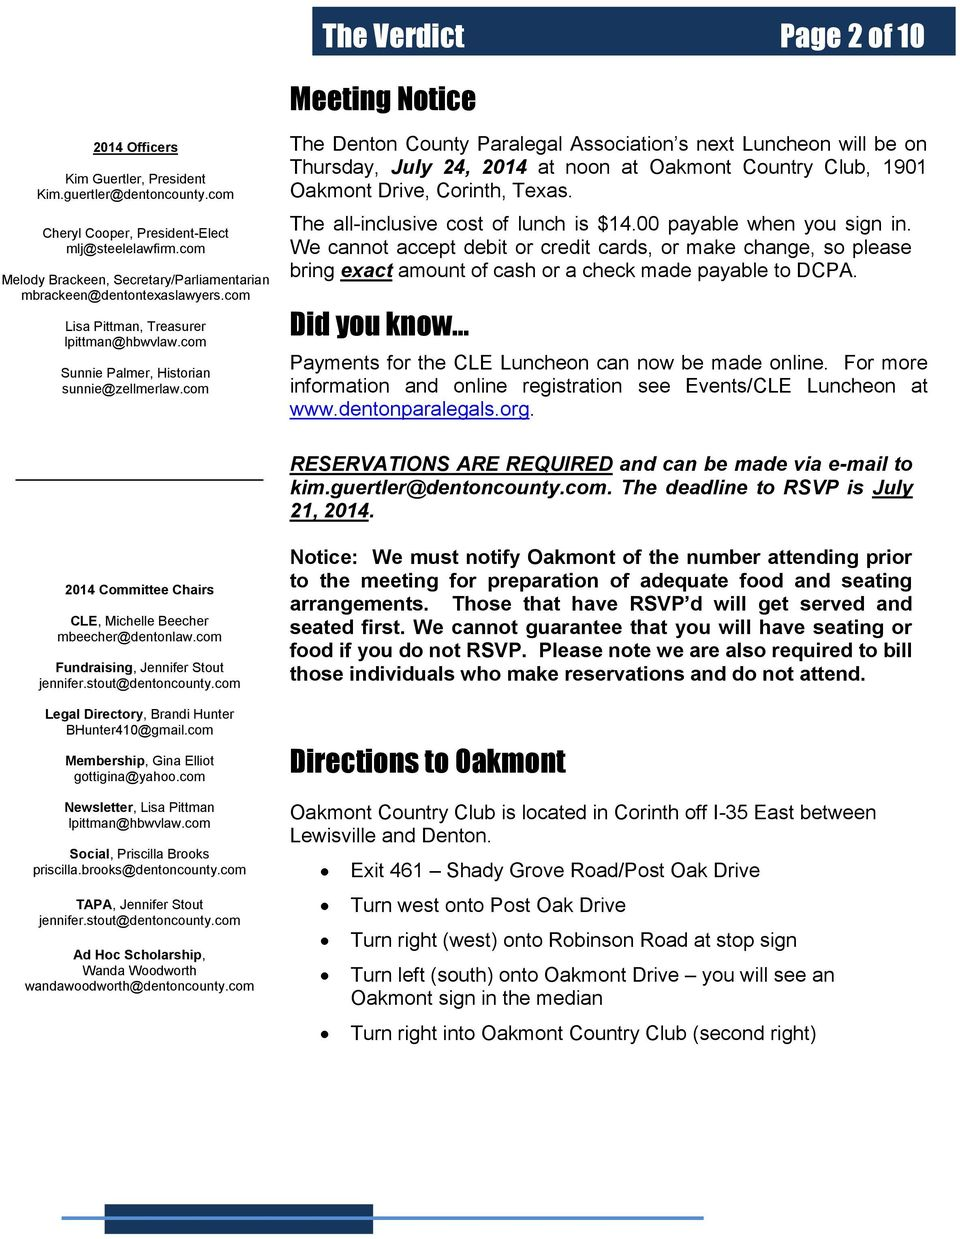 com Meeting Notice The Denton County Paralegal Association s next Luncheon will be on Thursday, July 24, 2014 at noon at Oakmont Country Club, 1901 Oakmont Drive, Corinth, Texas.